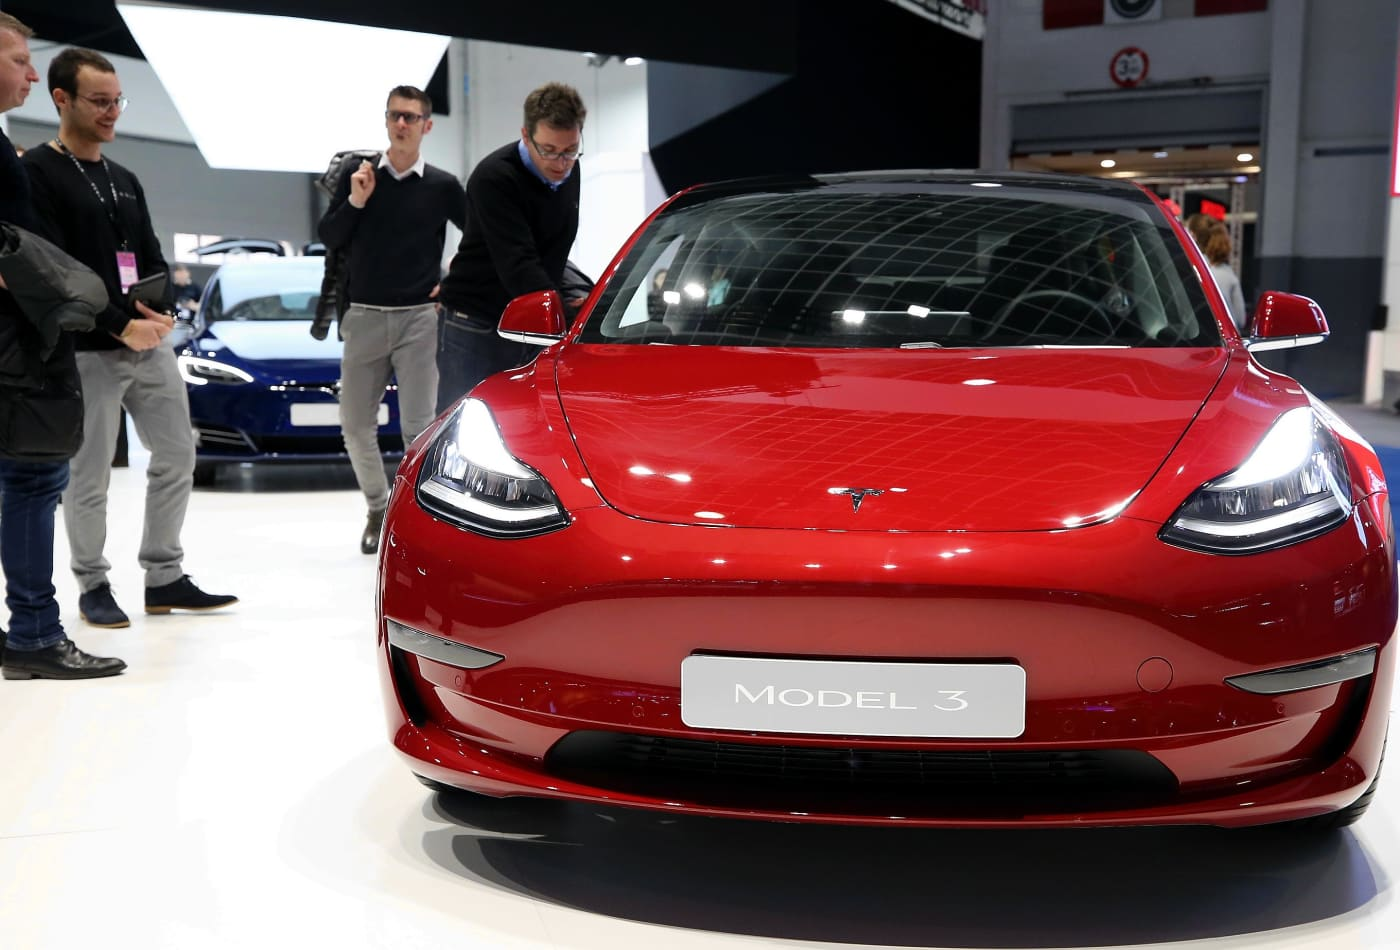 'These are the next FANG stocks,' Ark Invest portfolio manager says as firm sees record-breaking inflows